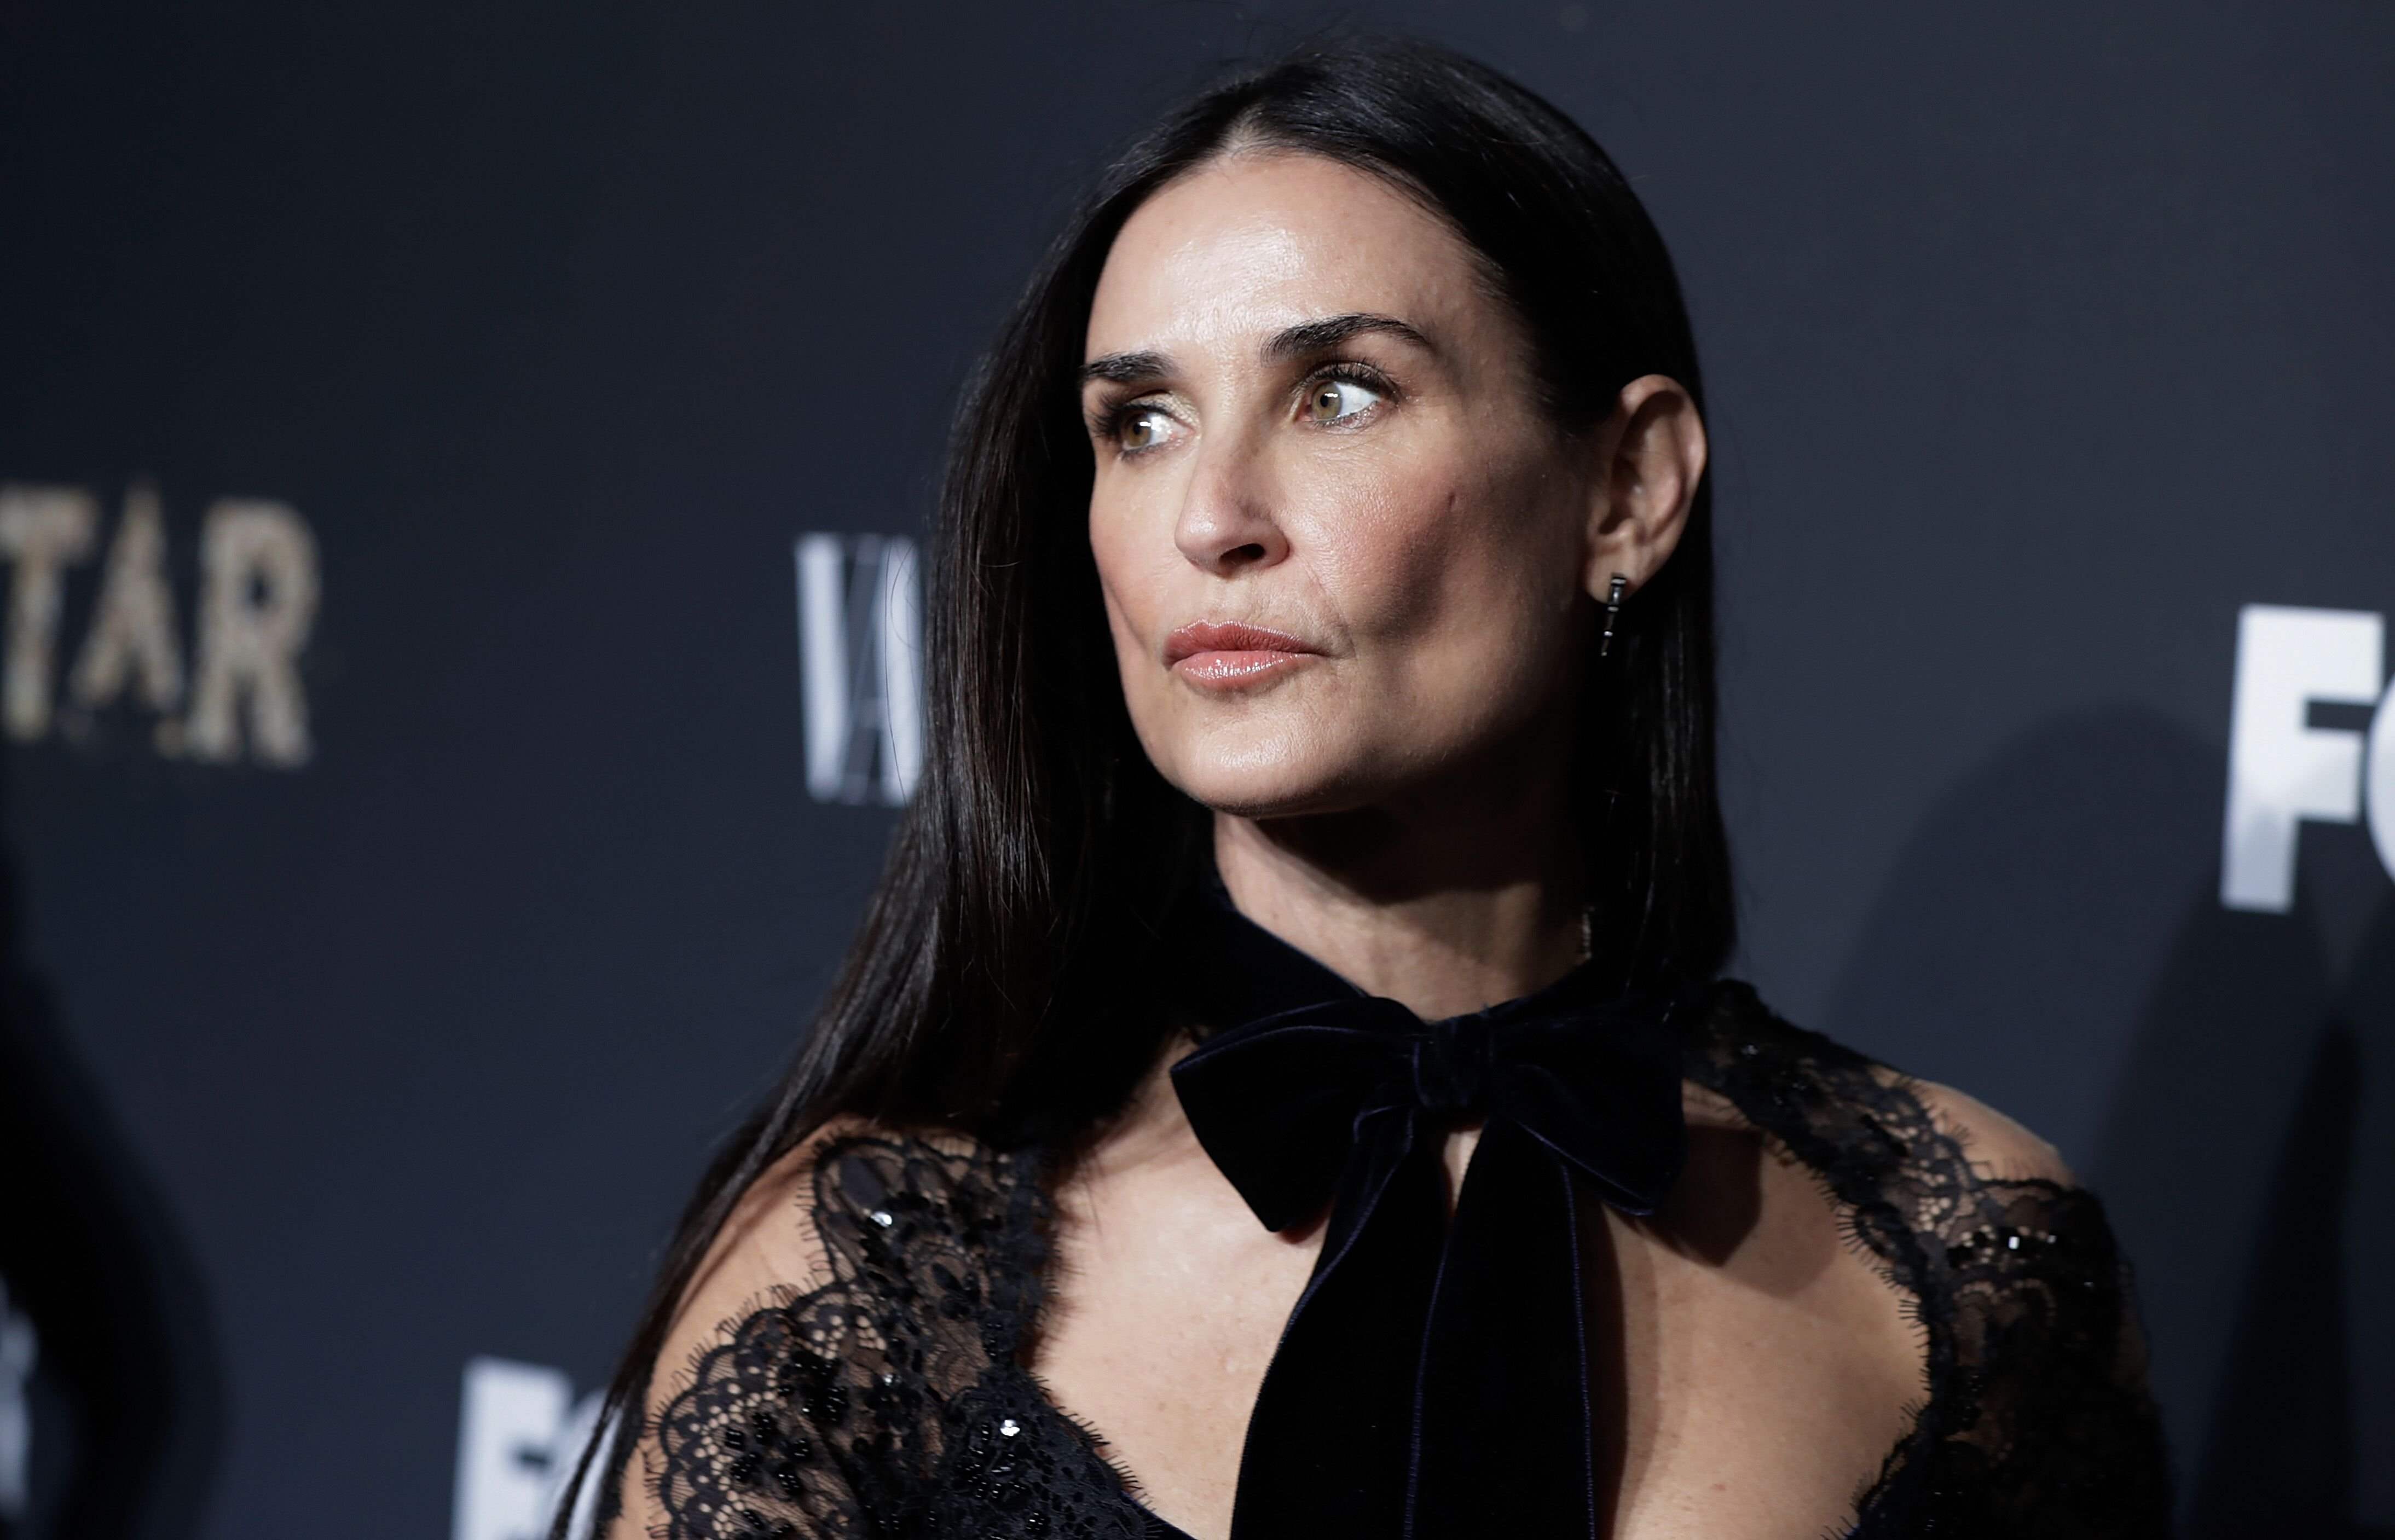 """Demi Moore at an event launching """"Empire"""" and """"Star"""" at One World Observatory in 2017 in New York 